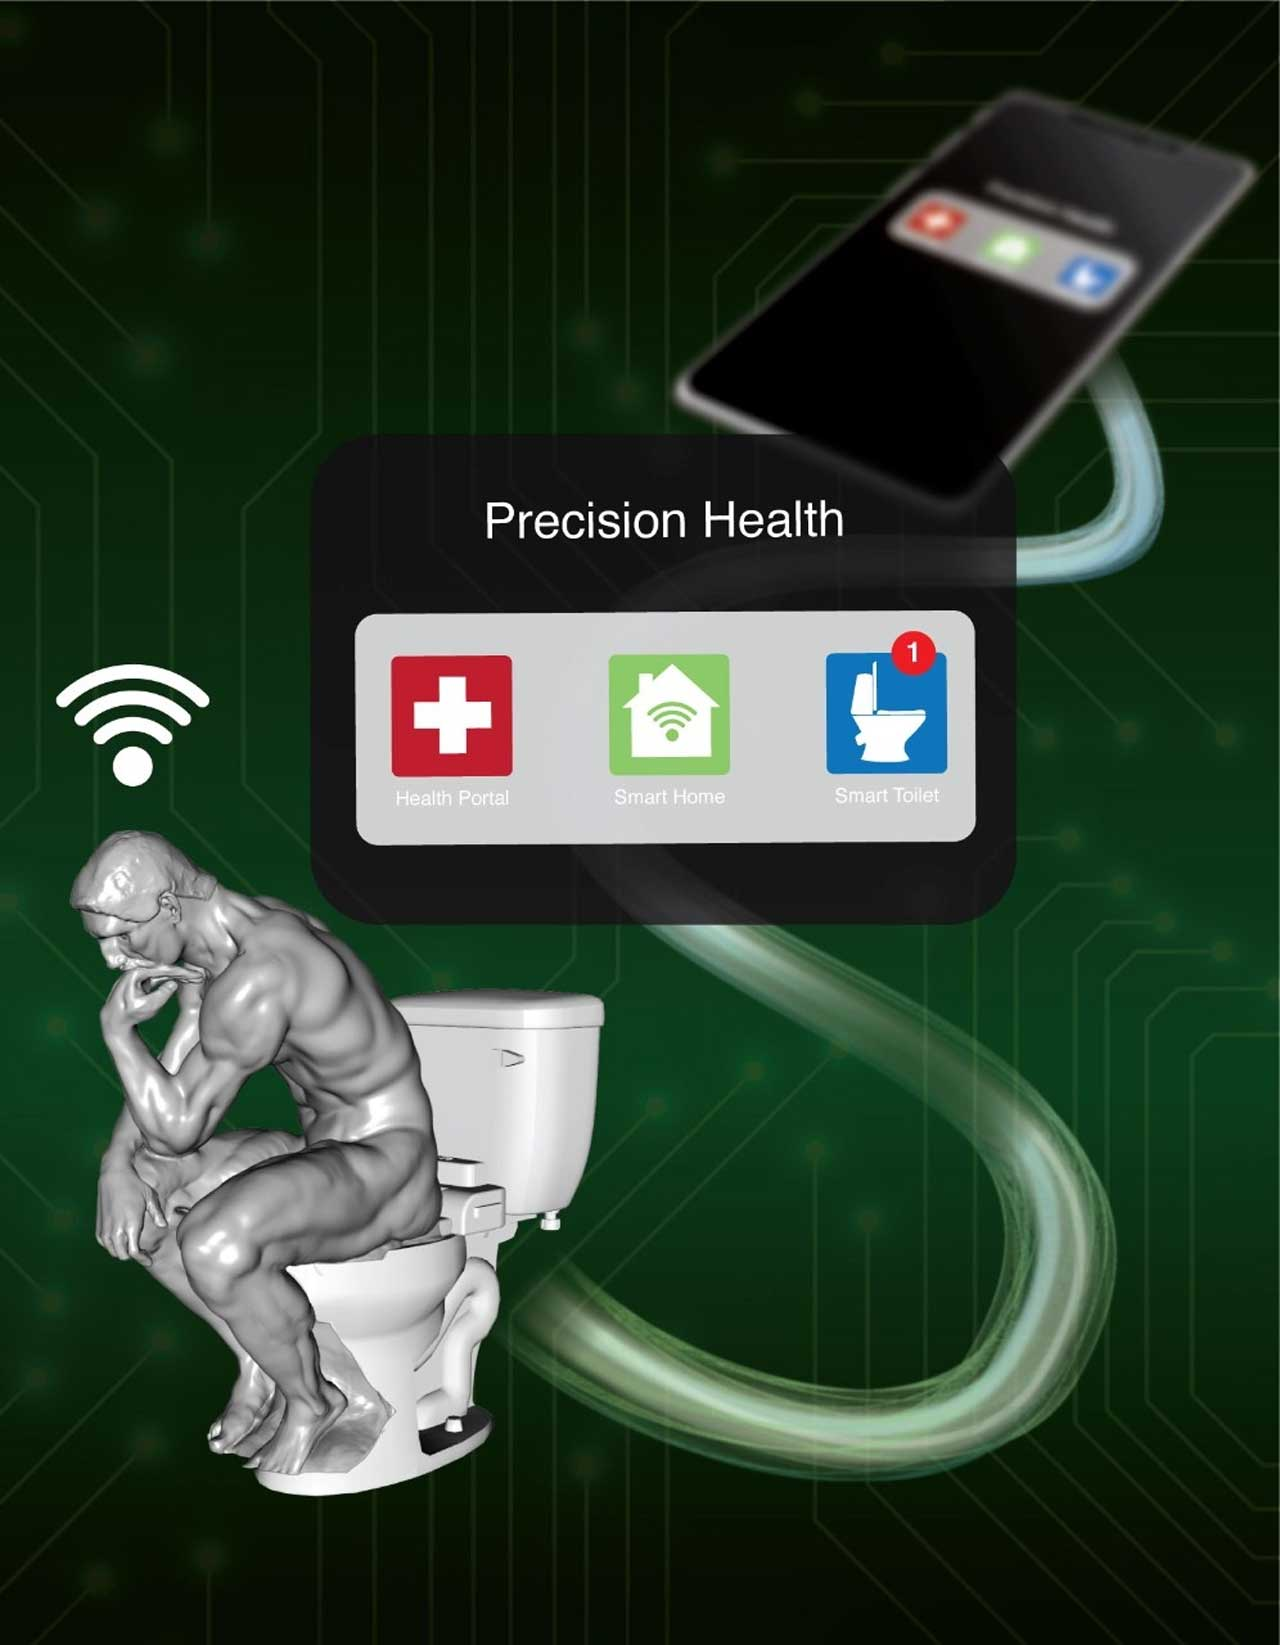 Stanford smart toilet monitors users for signs of disease